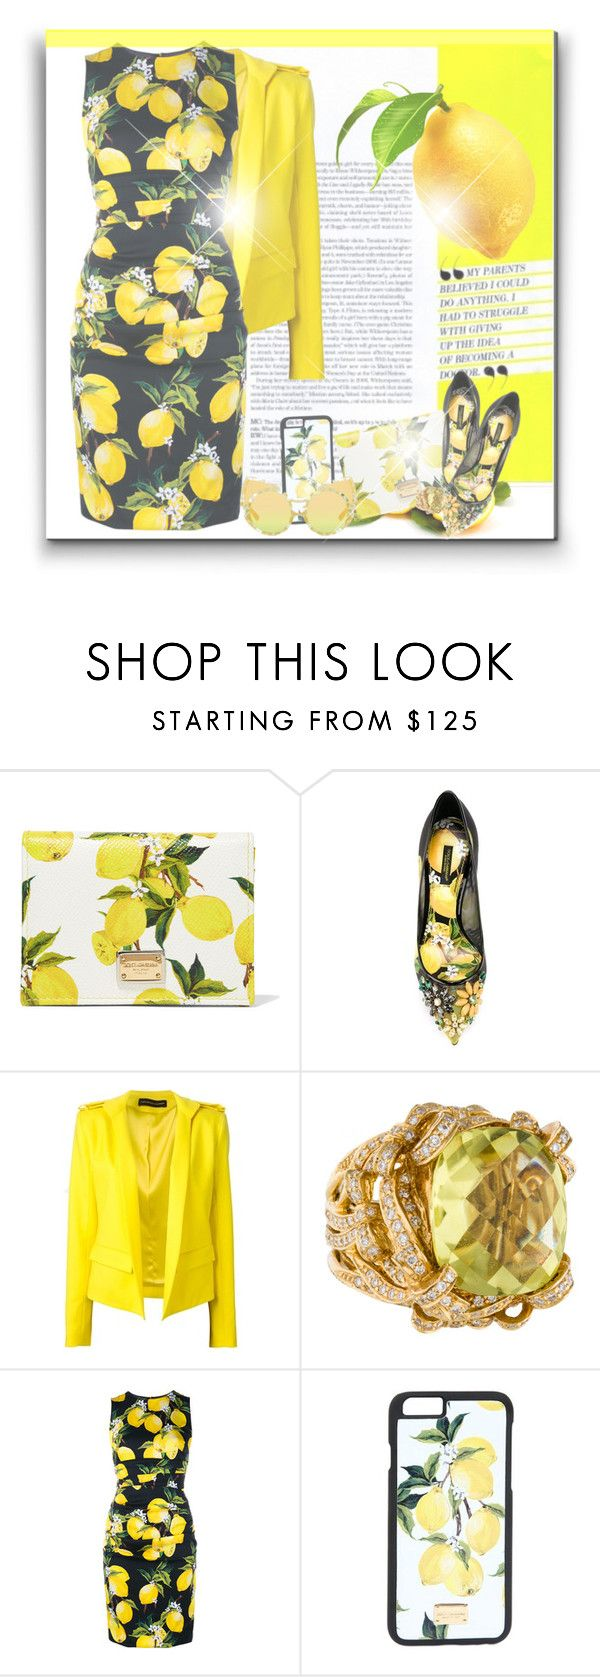 """""""Dress BEYONCE:"""" Lemonade anyone?"""""""" by byjjbh ❤ liked on Polyvore featuring Dolce&Gabbana, Alexandre Vauthier, yellow, Beyonce and lemonade"""